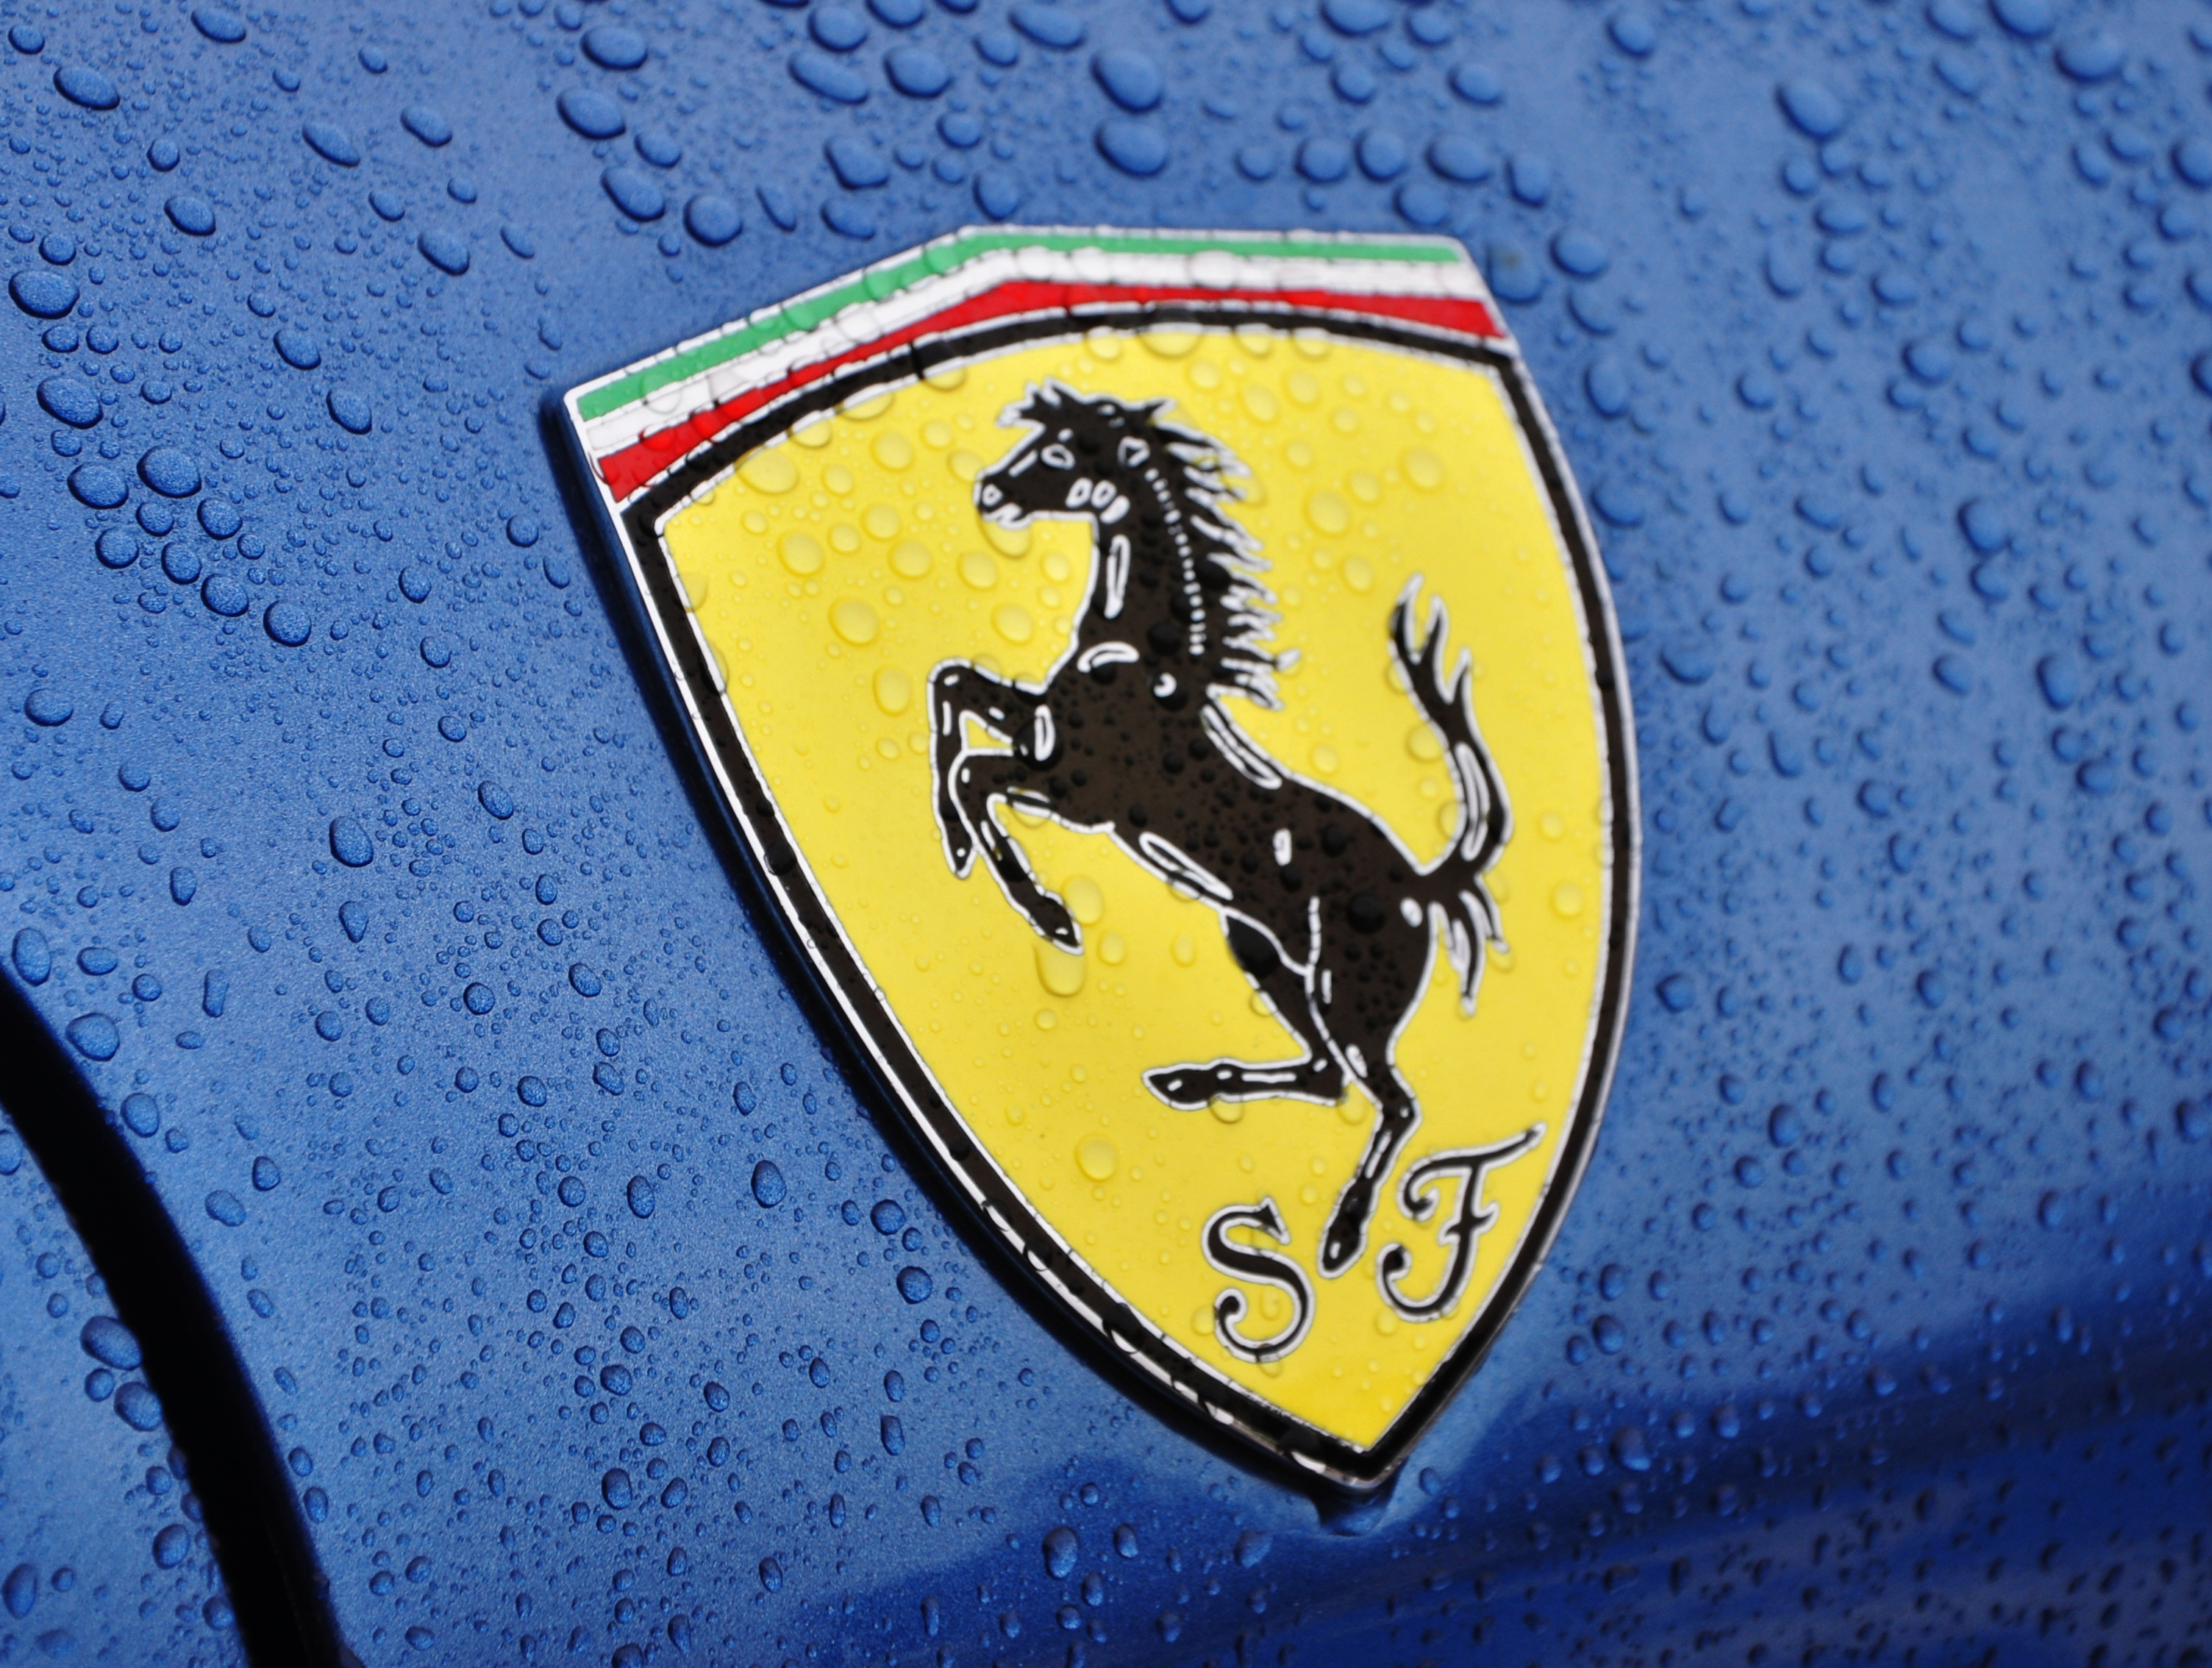 ferrari logo meaning and history, latest models | world cars brands